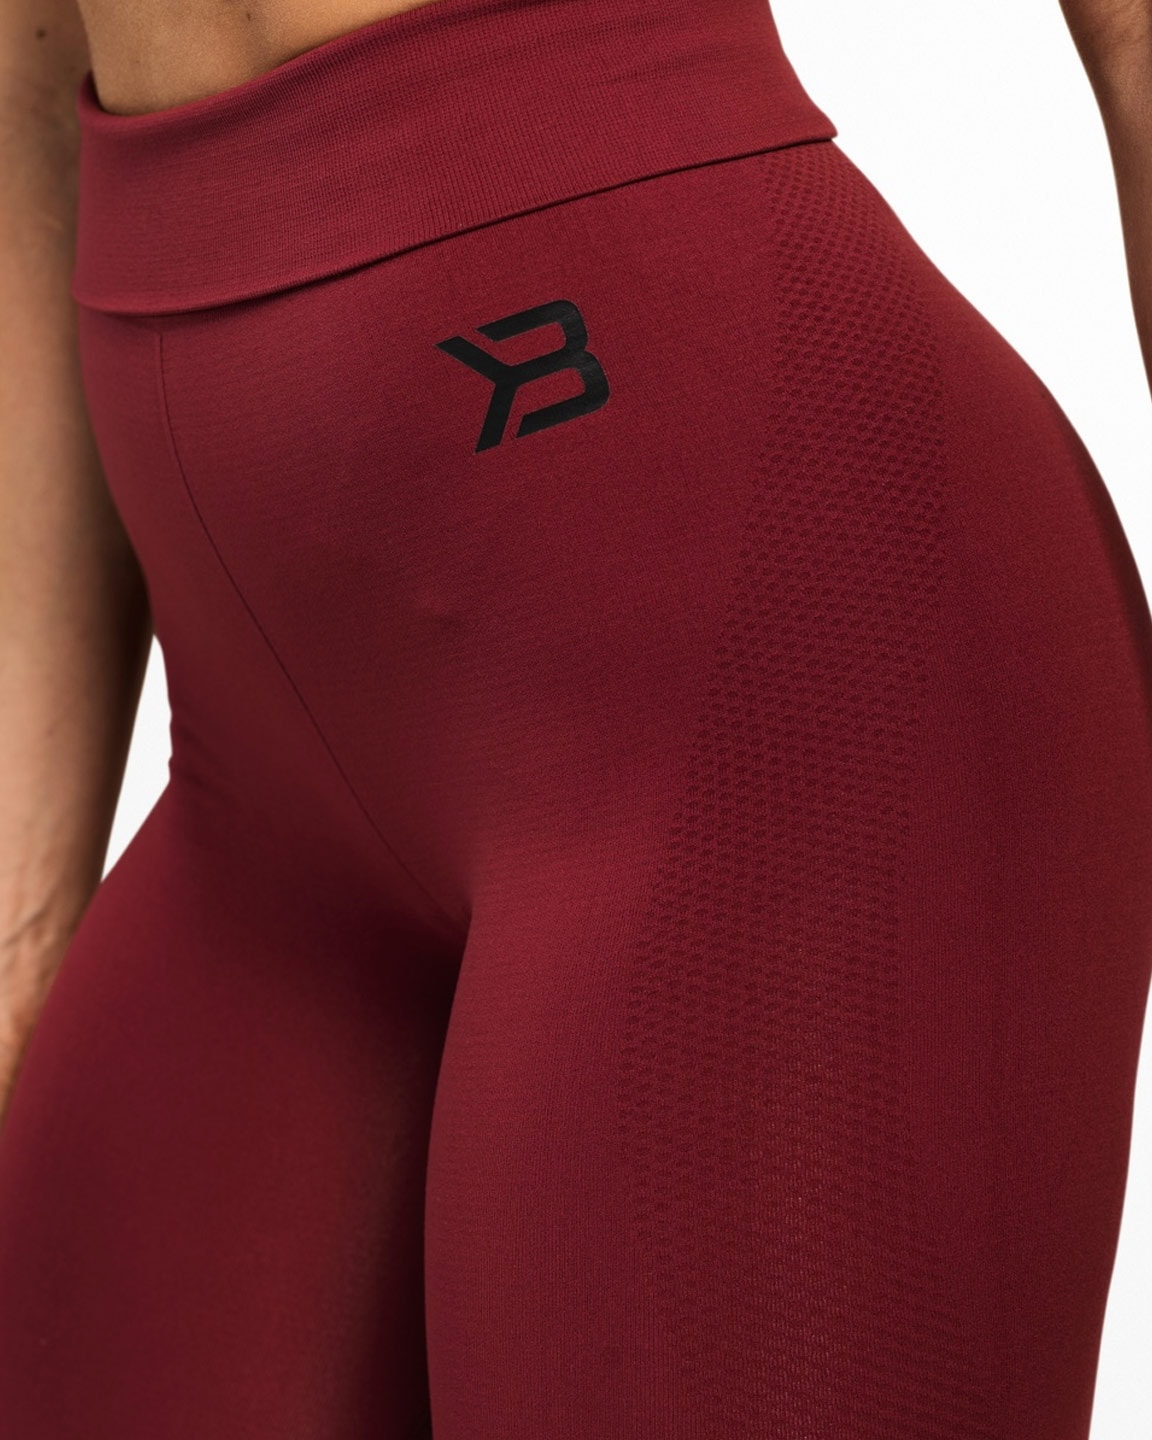 rockaway-seamless-sangria-red-tights-6